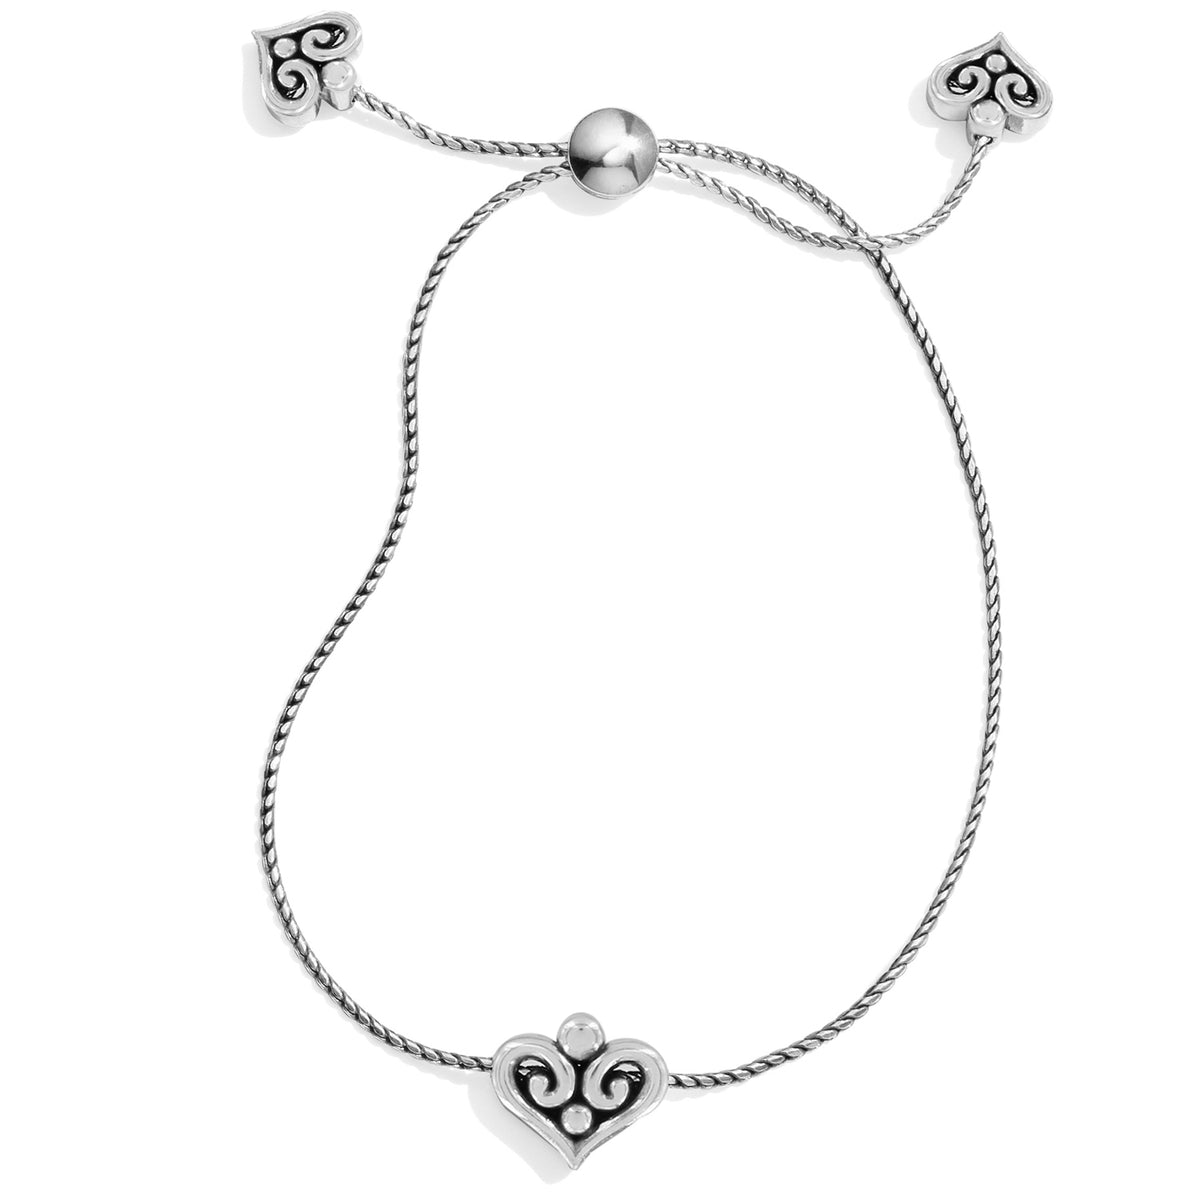 Alcazar Princess Adjustable Bracelet